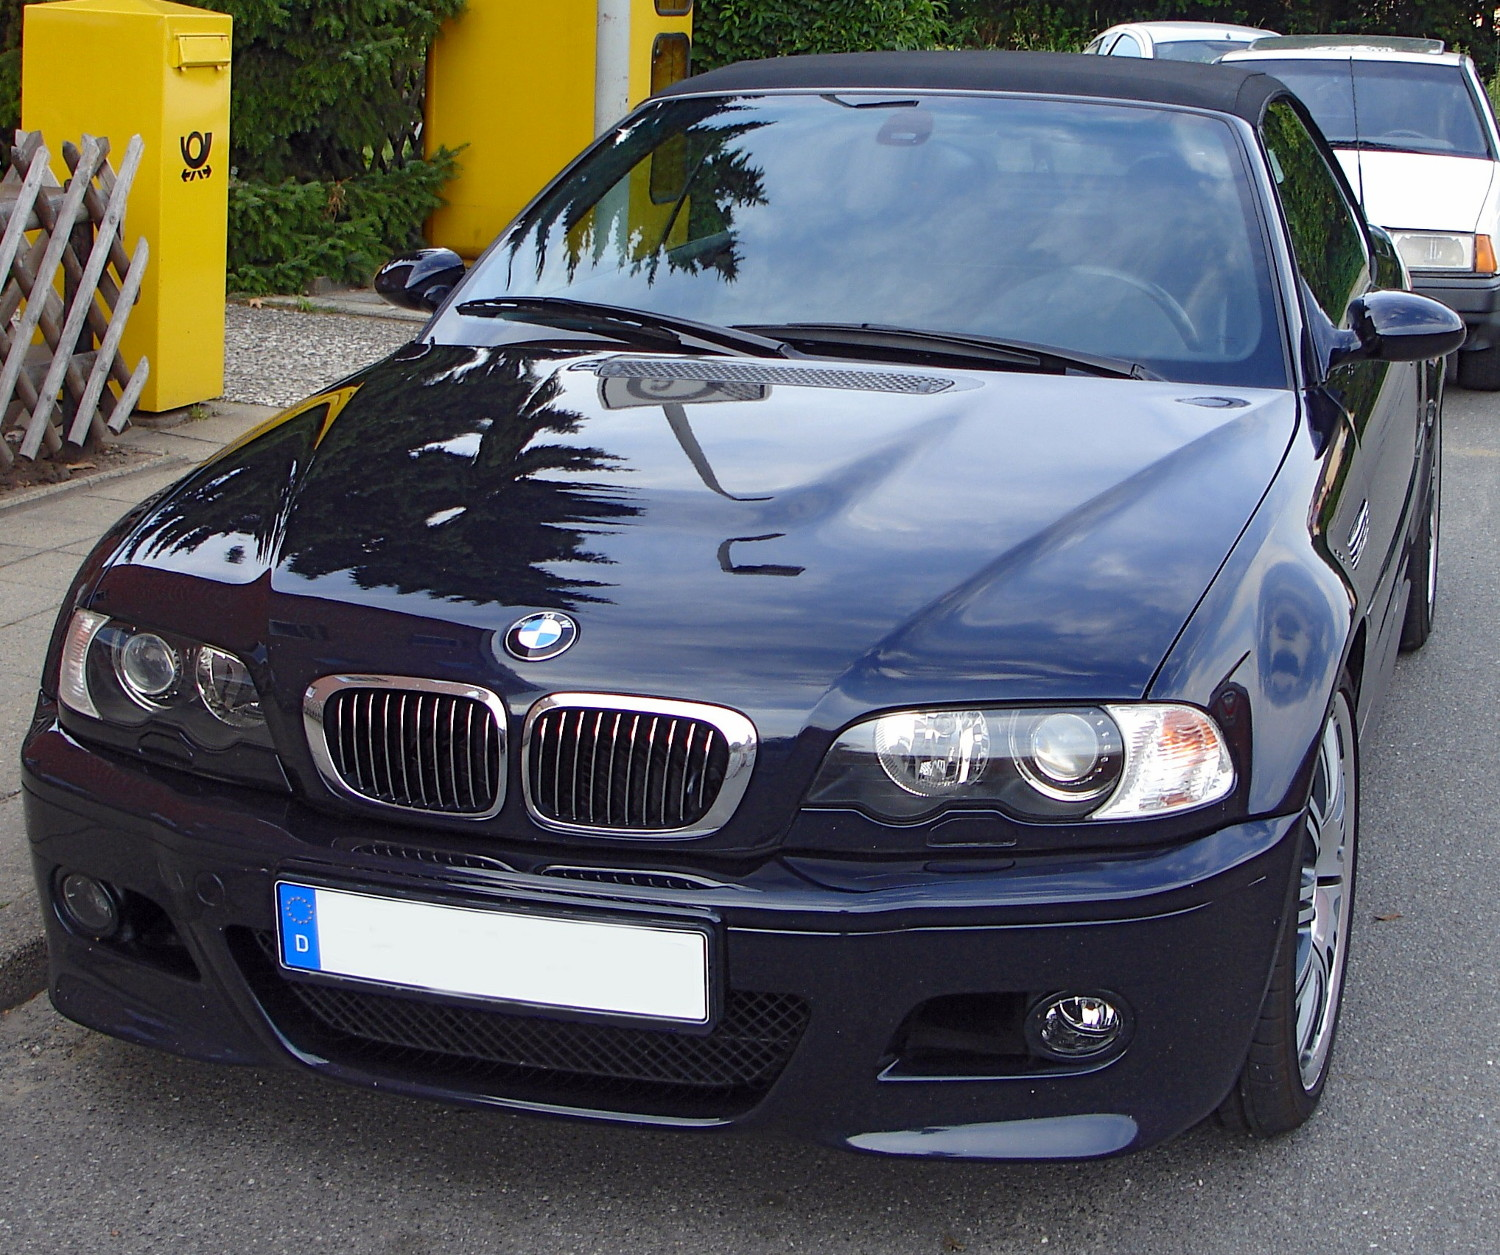 Bmw Year 2000: Pictures, Information And Specs